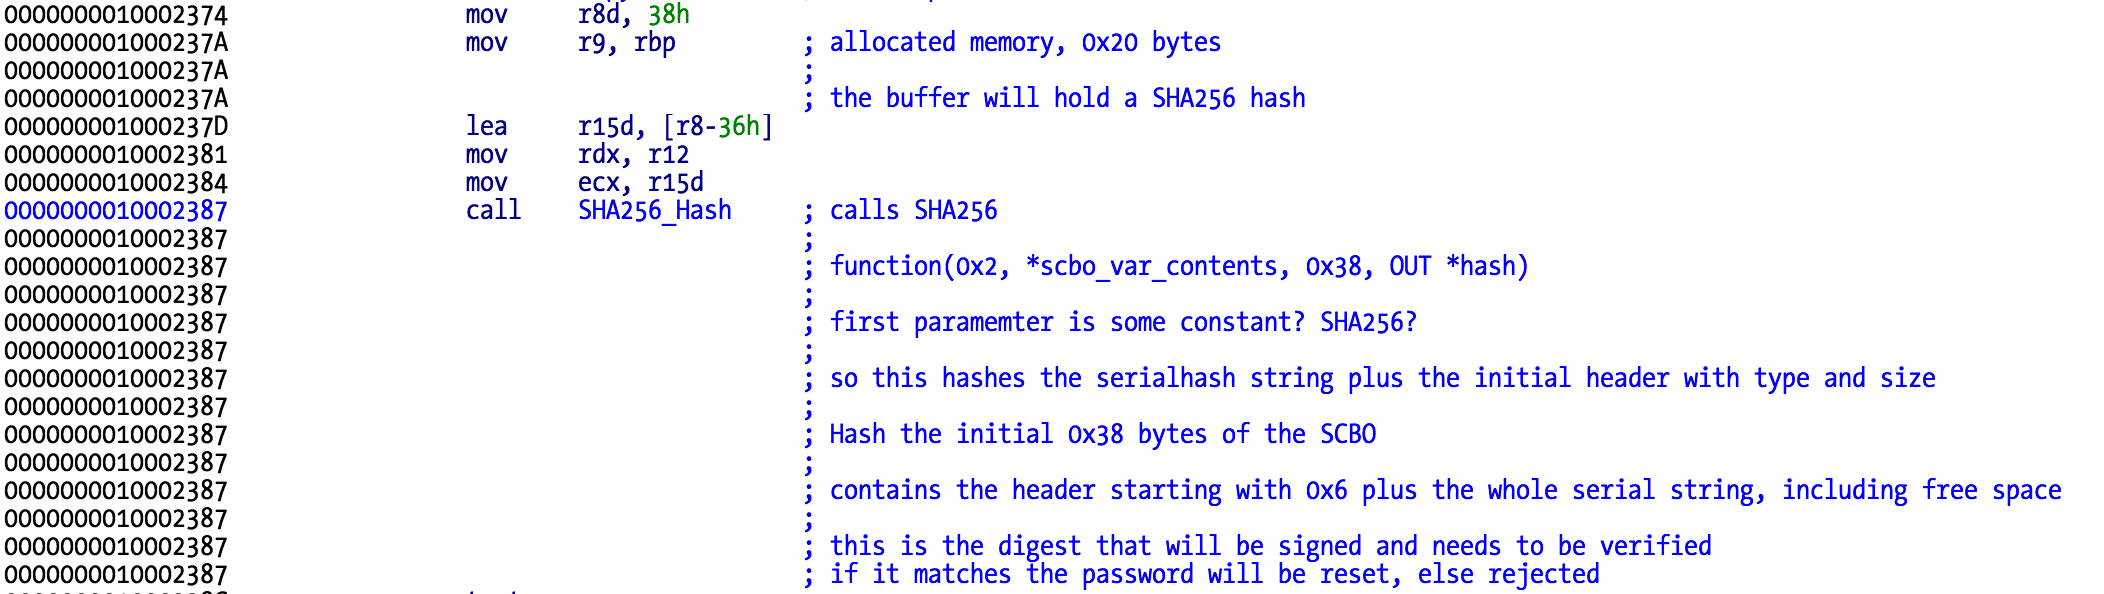 hash scbo contents